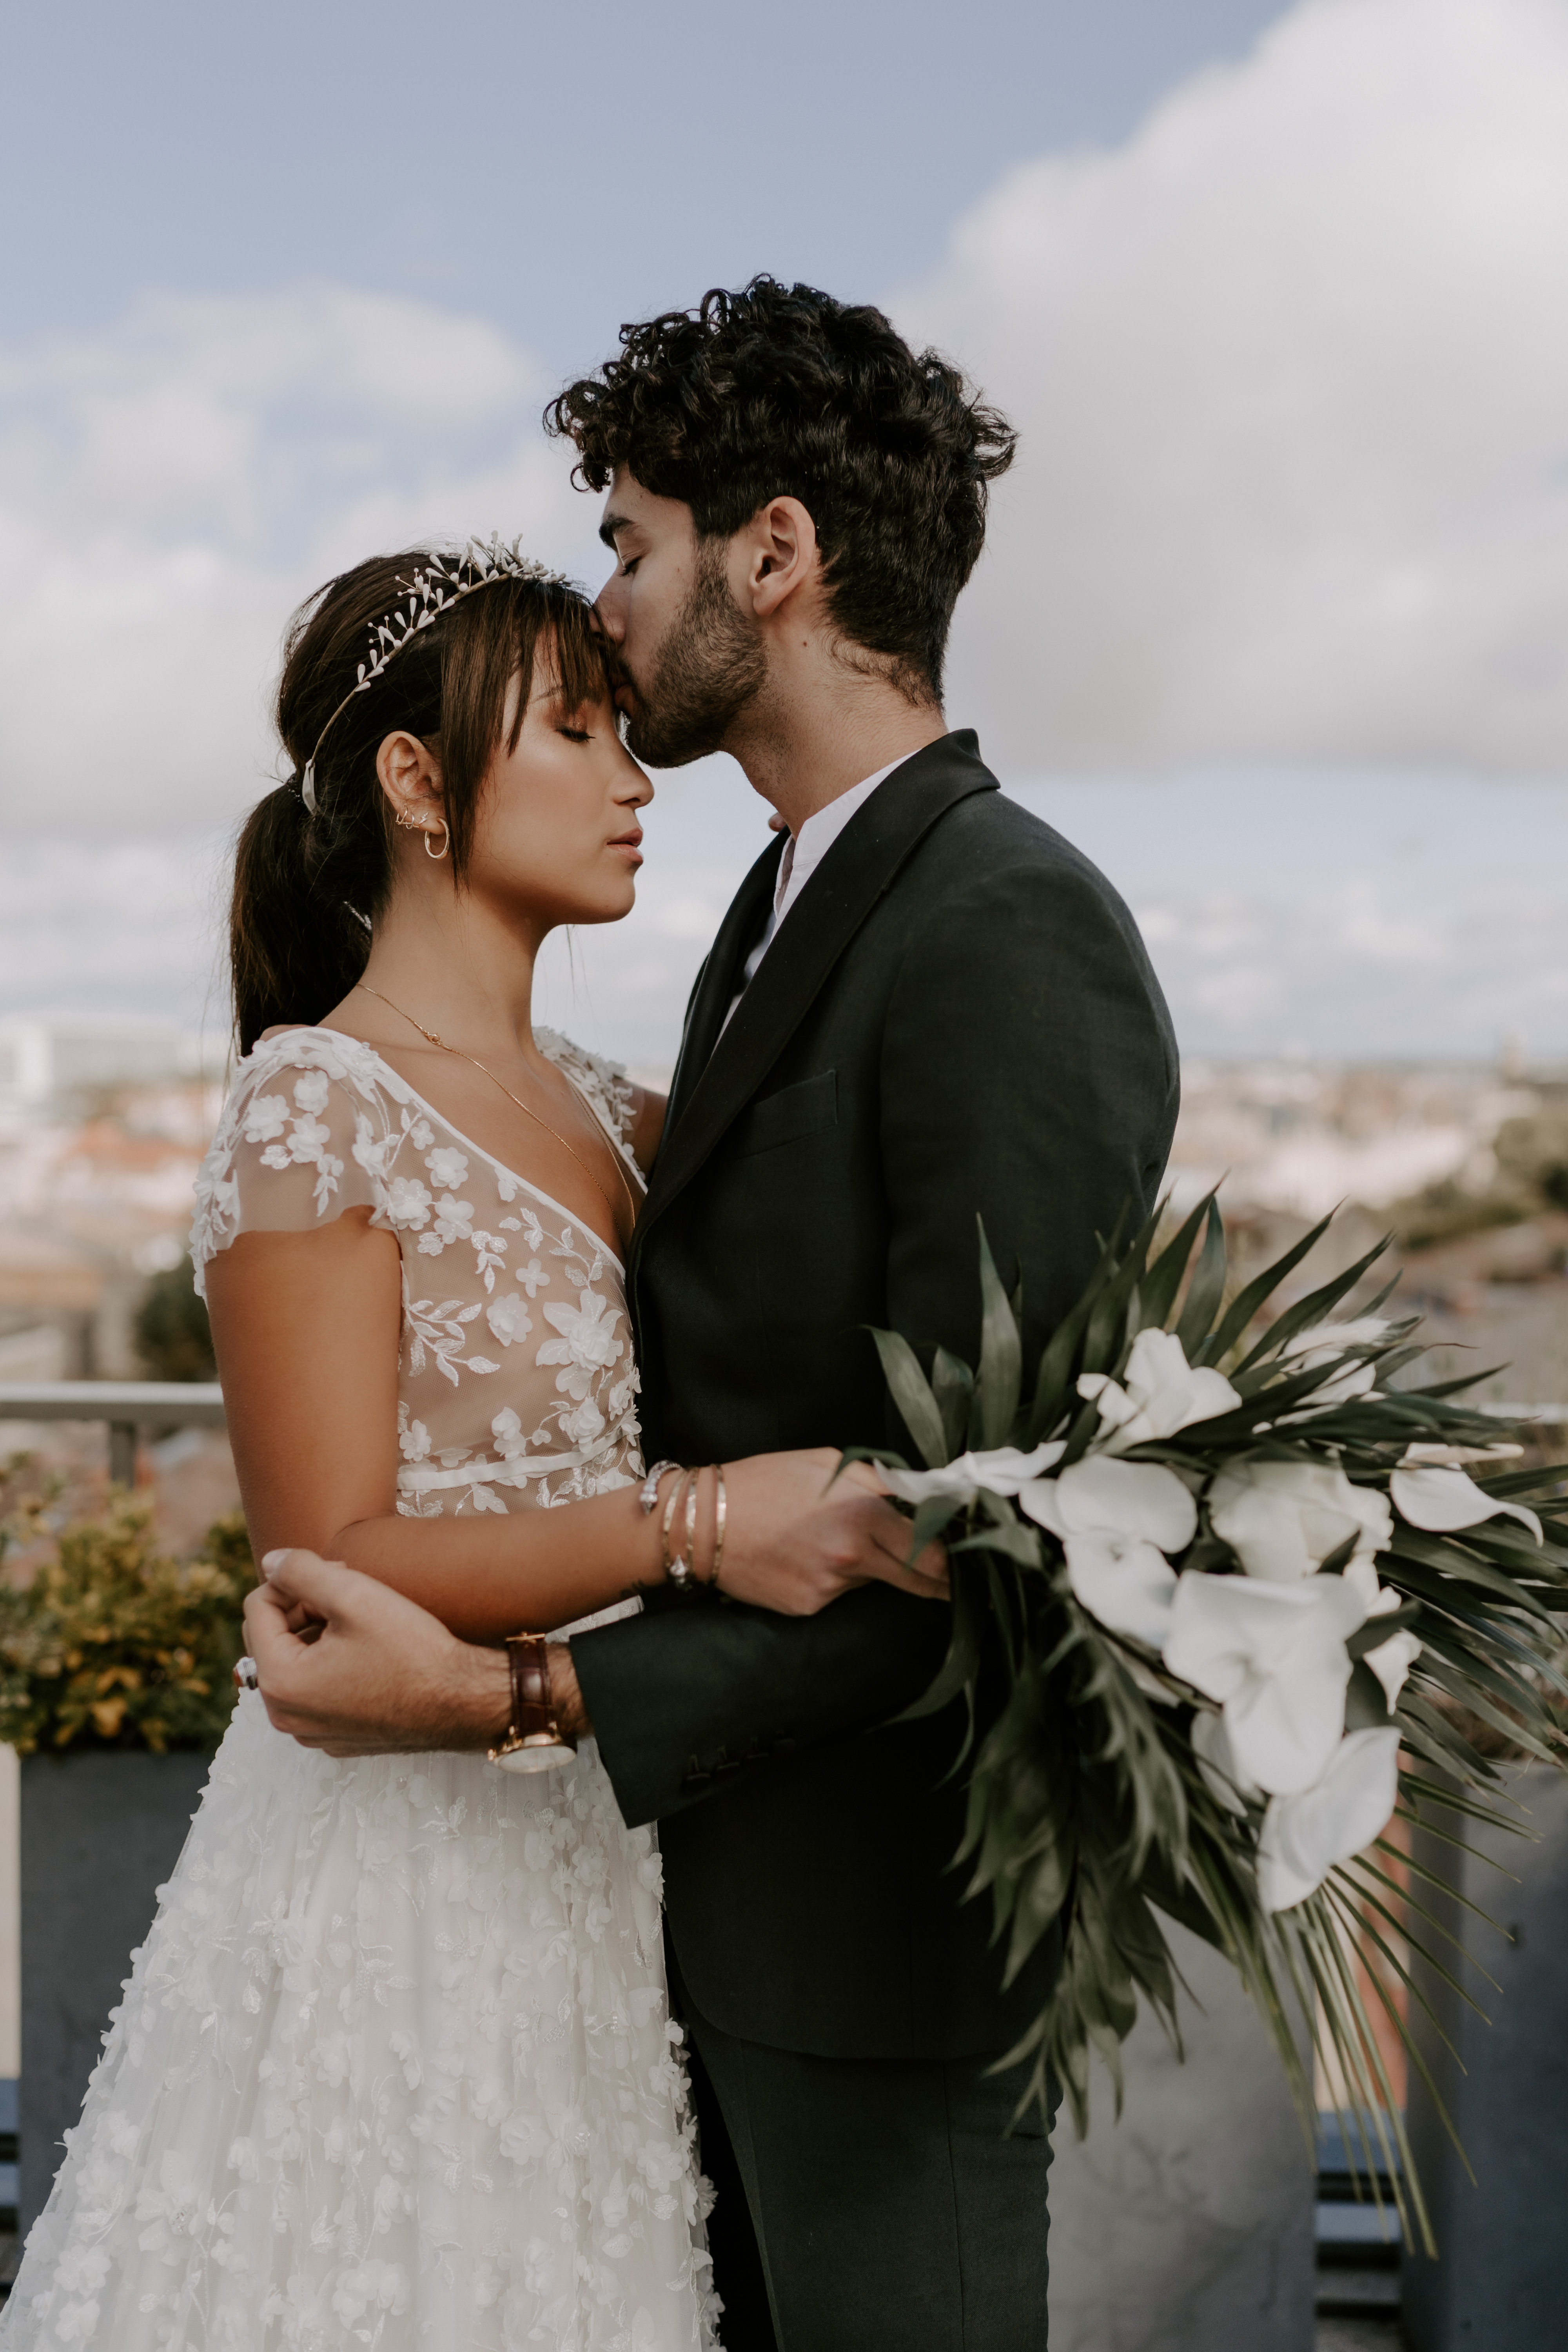 Festival Mariage You and Me | Bordeaux 2020